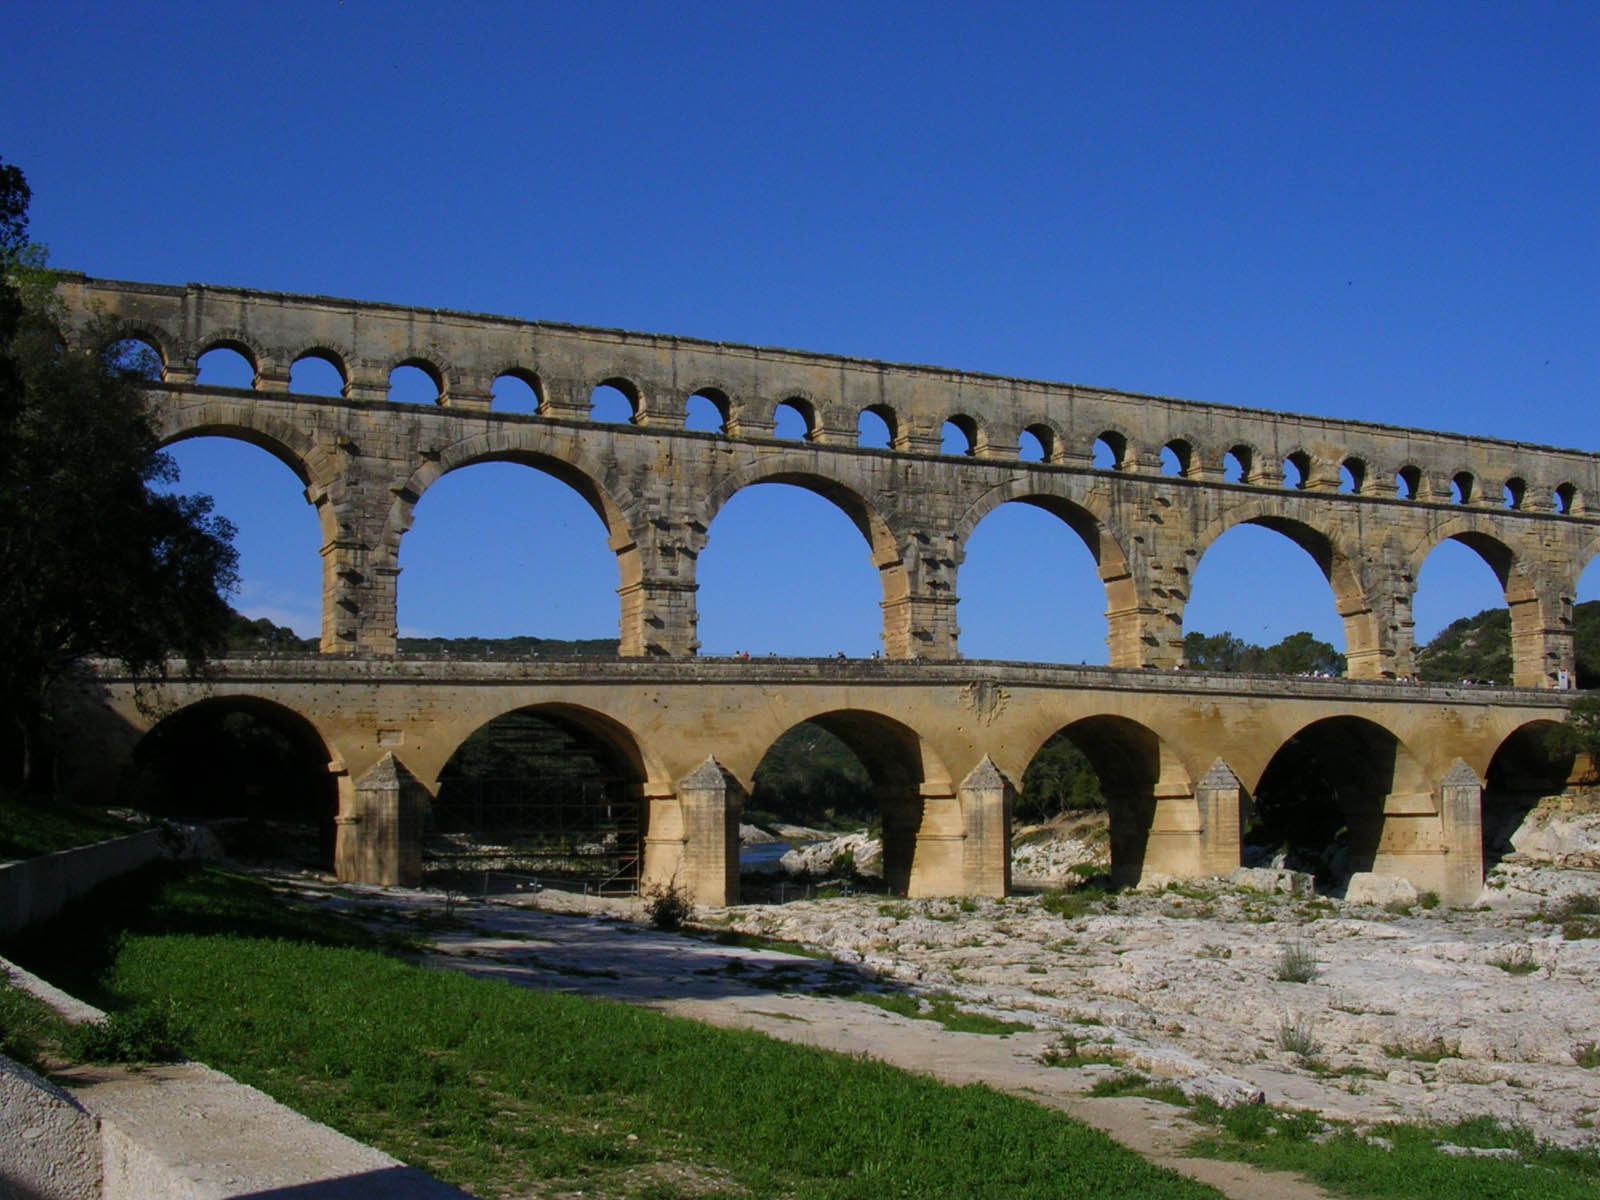 wallpapers: Pont Du Gard Roman Aqueduct